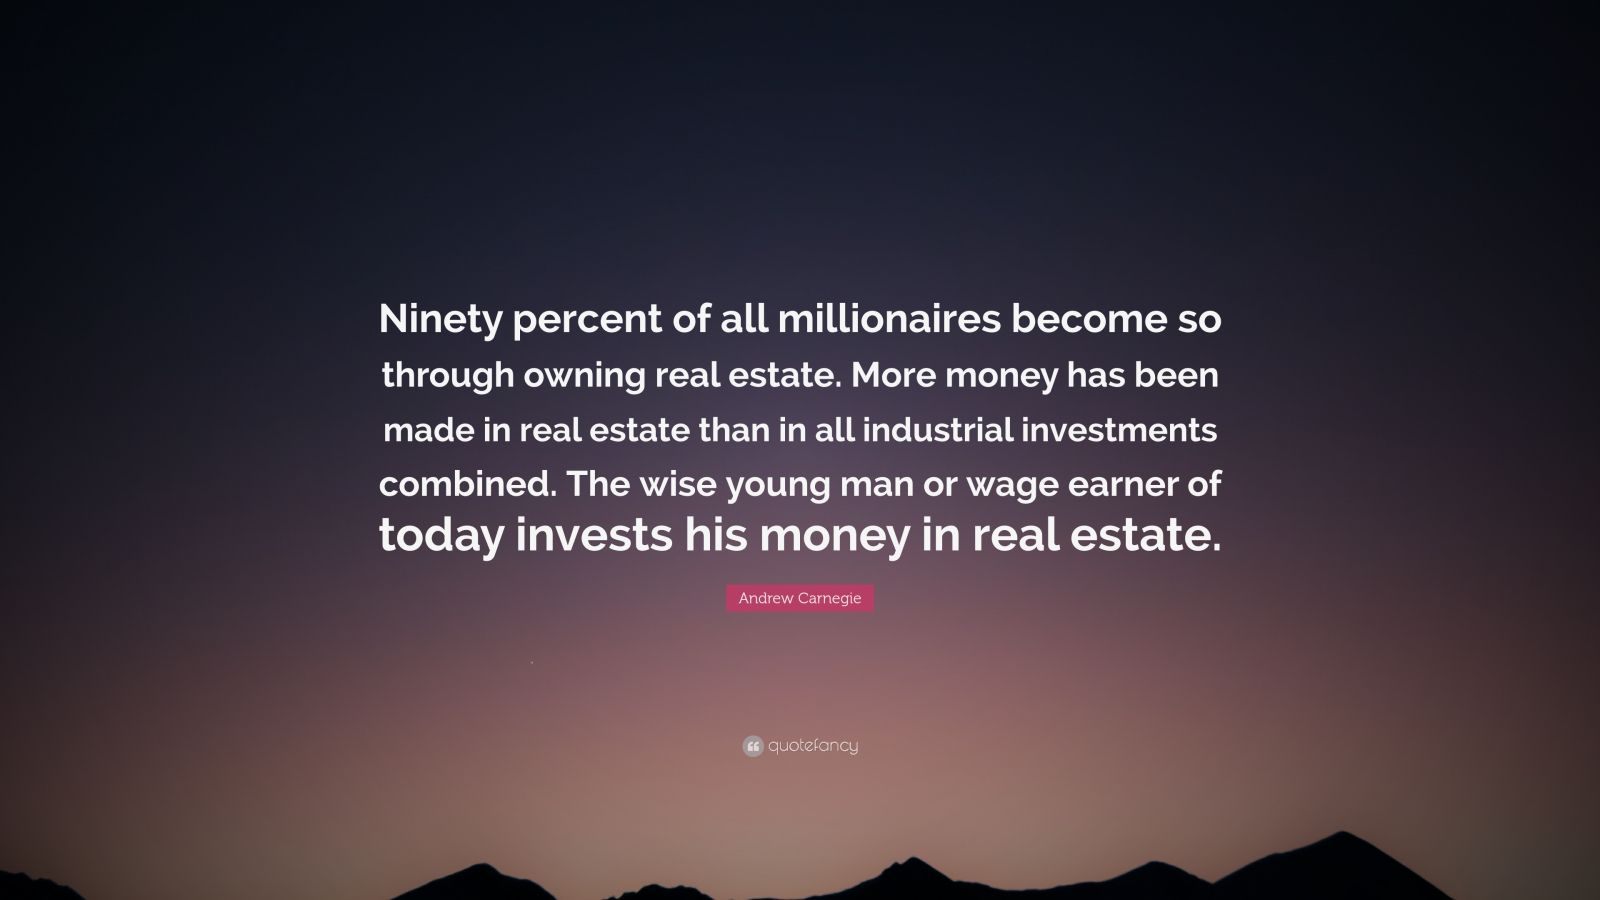 """Andrew Carnegie Quote: """"Ninety percent of all millionaires become so through owning real estate. More money has been made in real estate than in all industrial investments combined. The wise young man or wage earner of today invests his money in real estate."""""""